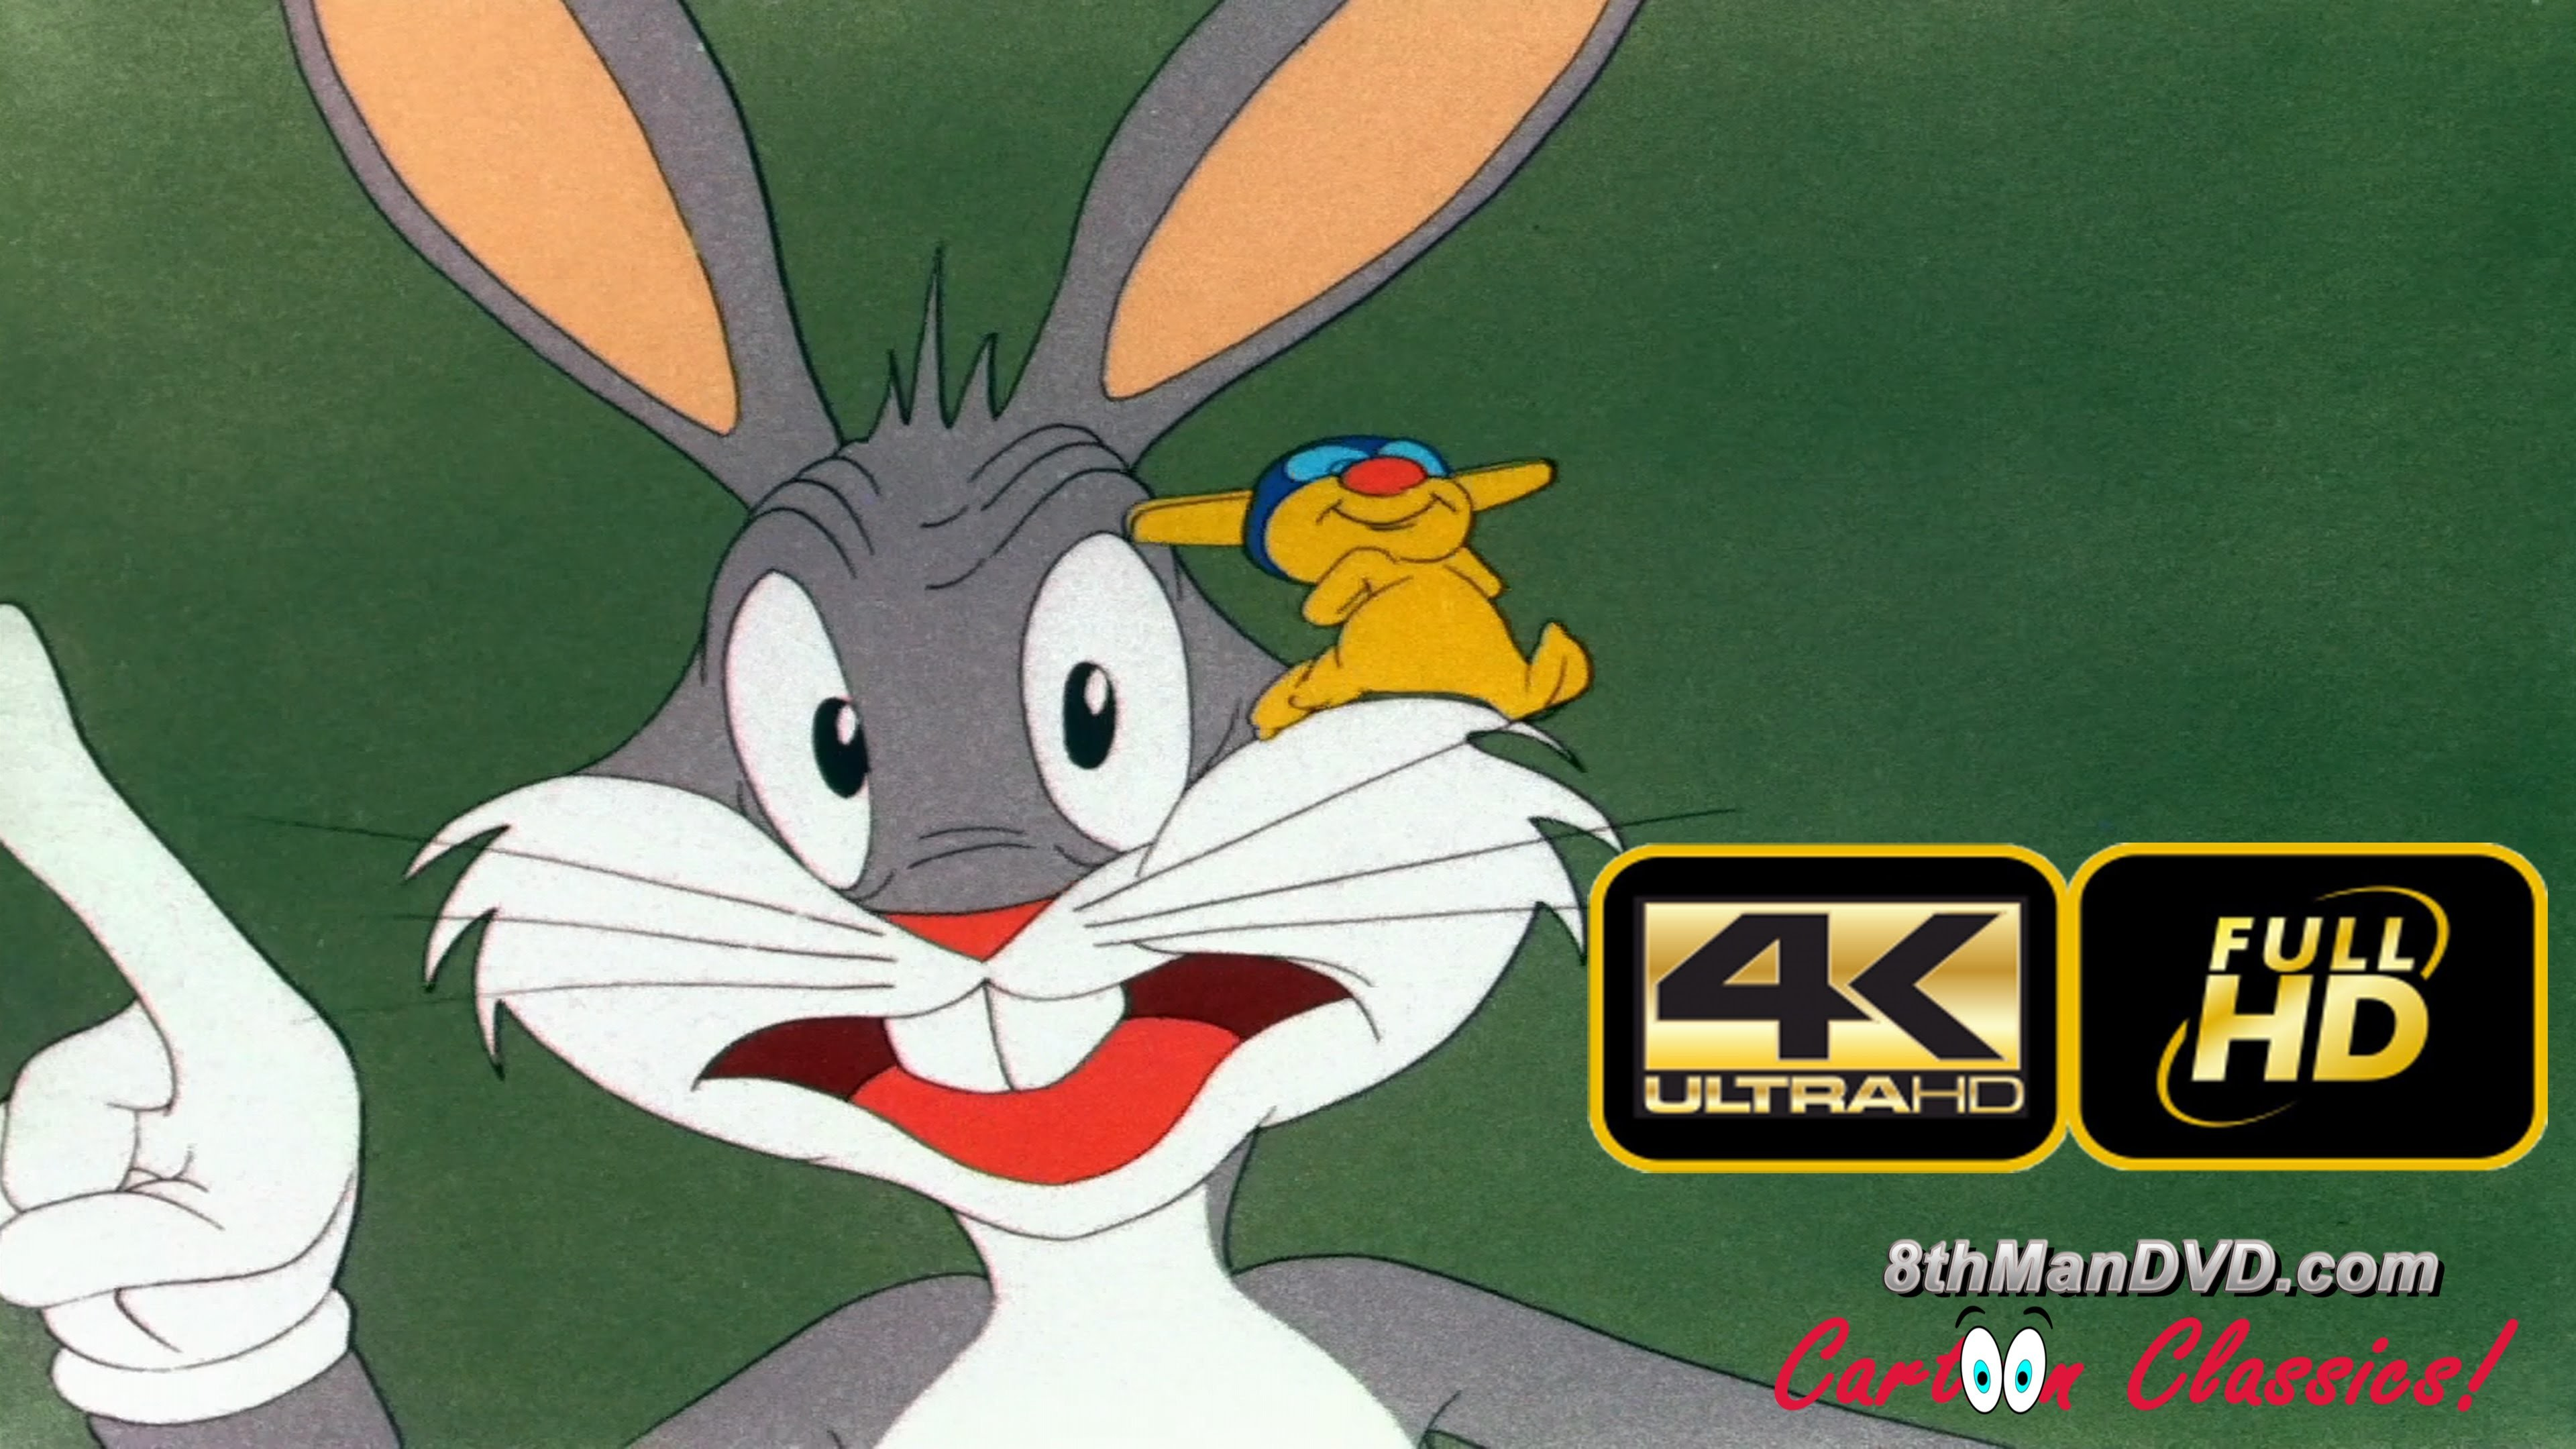 Res: 3840x2160, Looney Tunes Toons Falling Hare Bugs Bunny Wallpaper Loony Carton High Hd  Pics For Smartphone